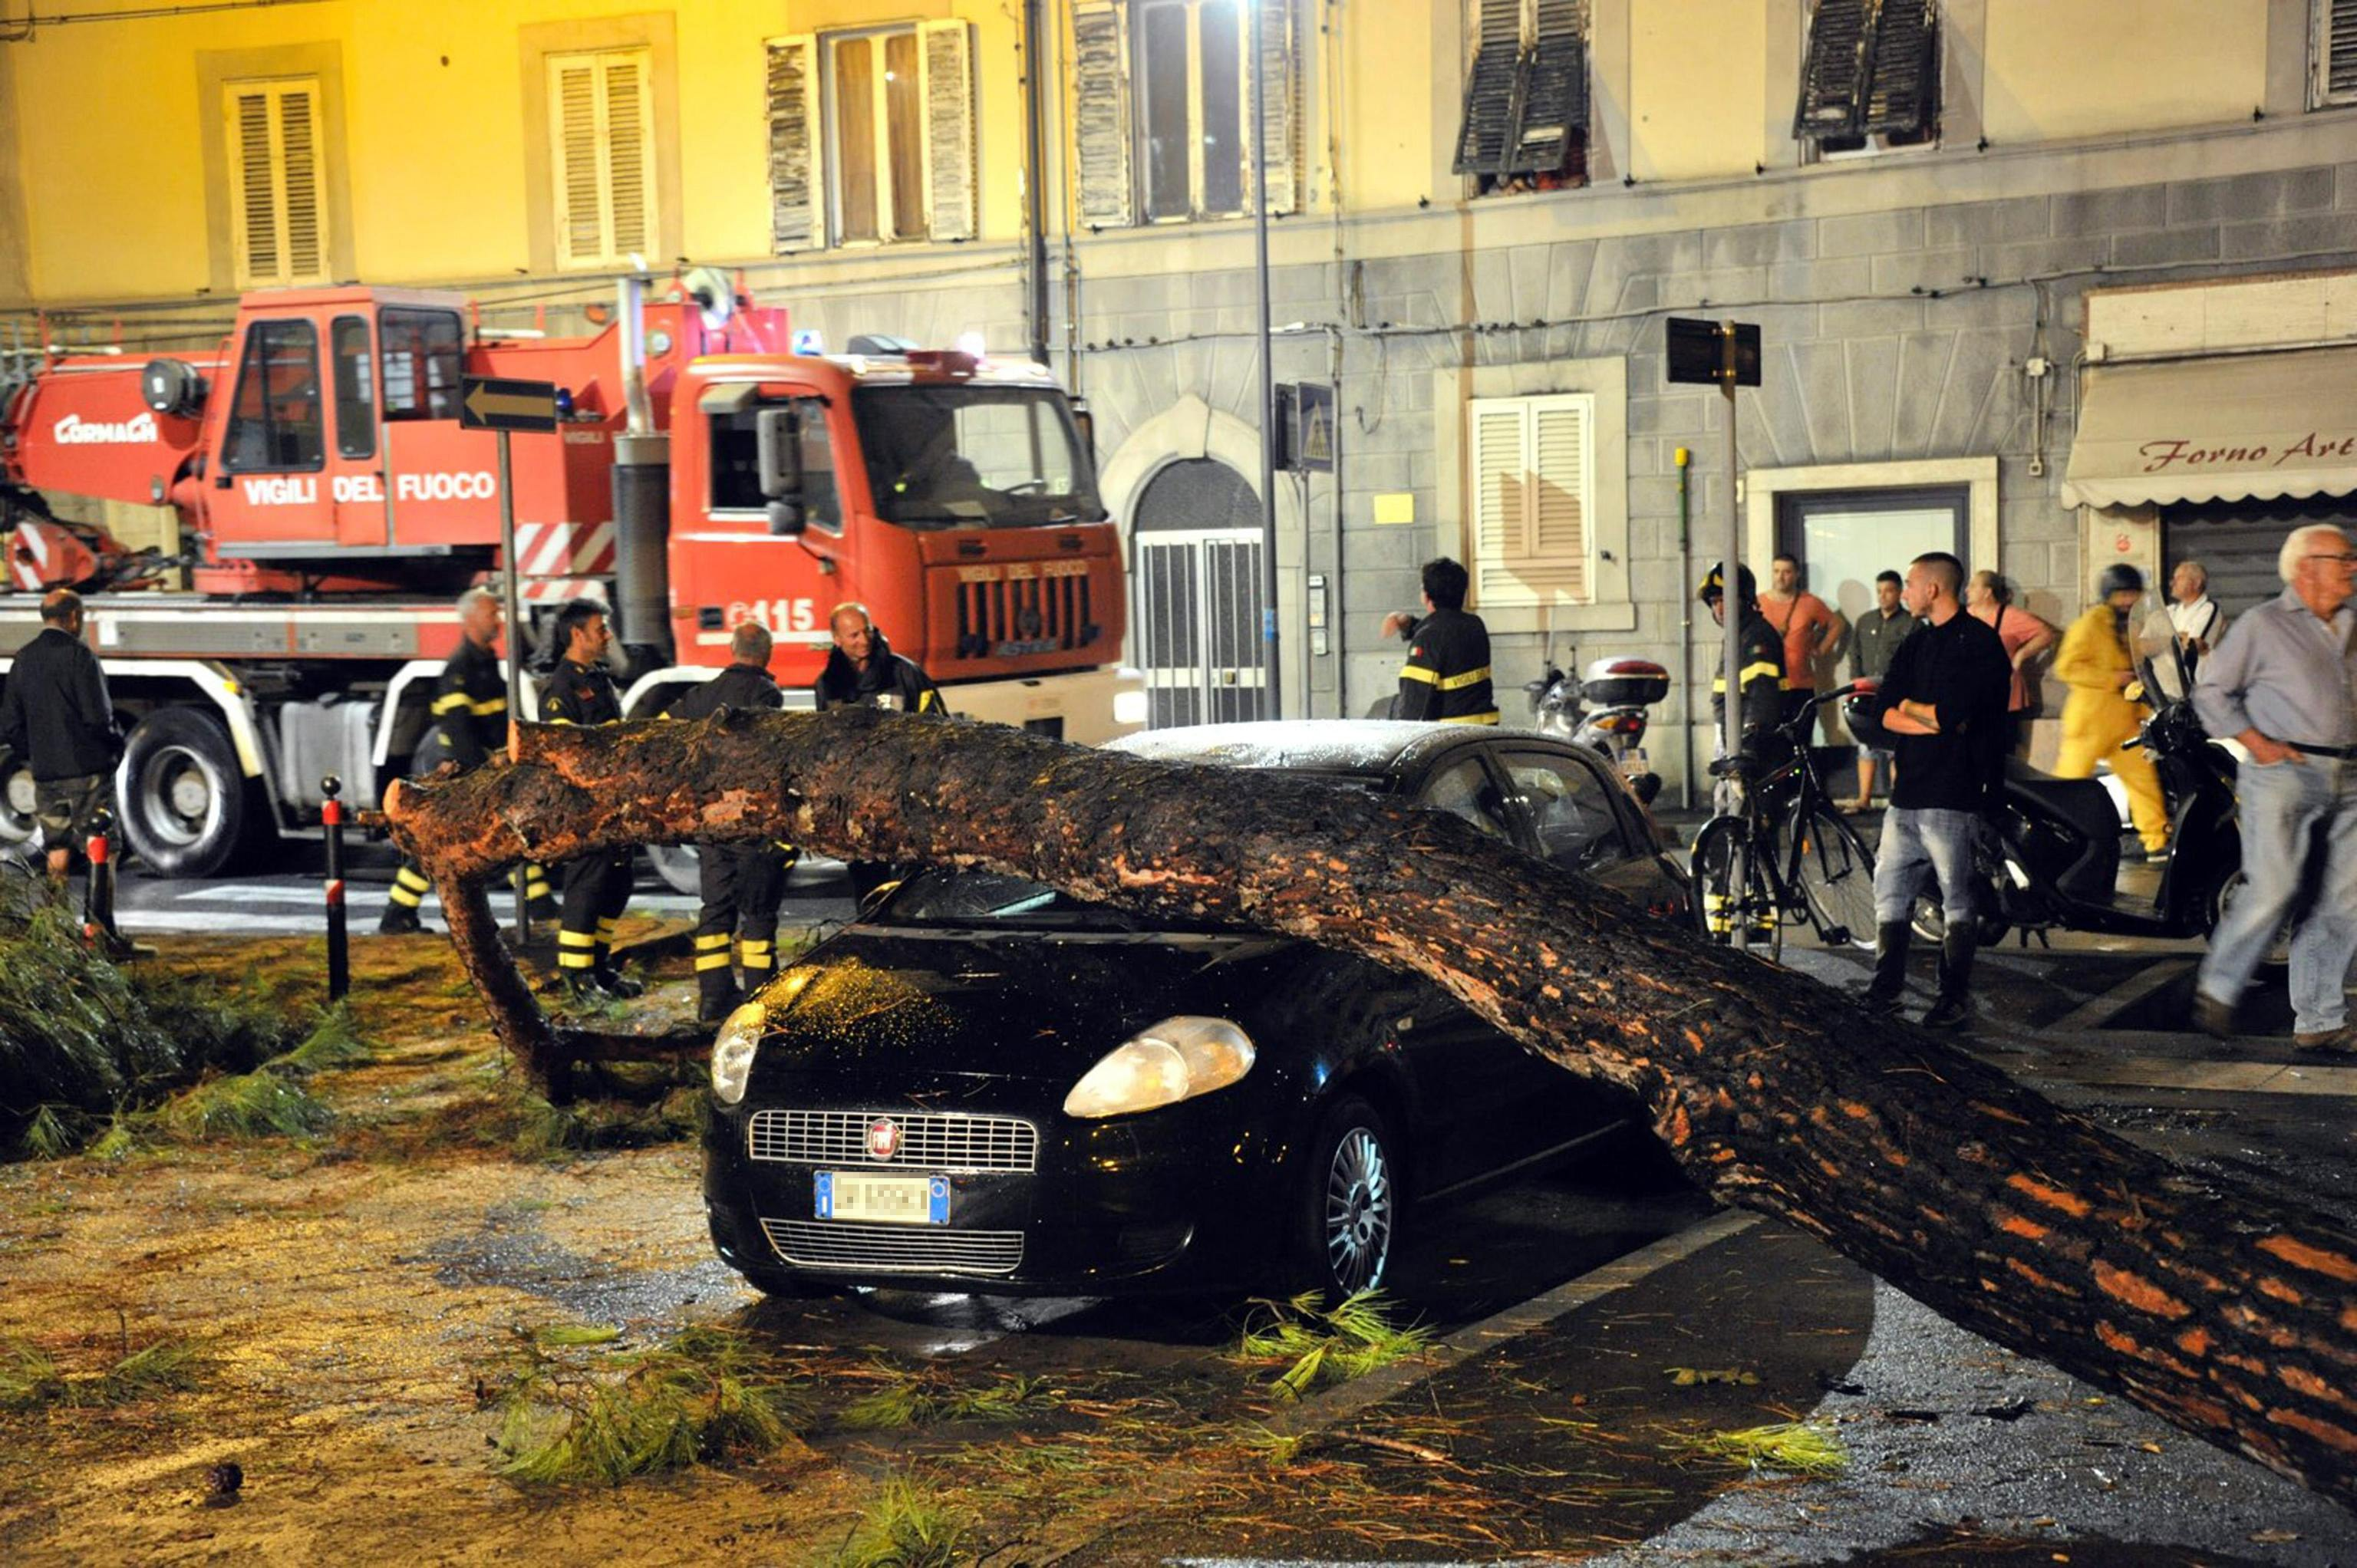 Several people dead due to flooding in Livorno